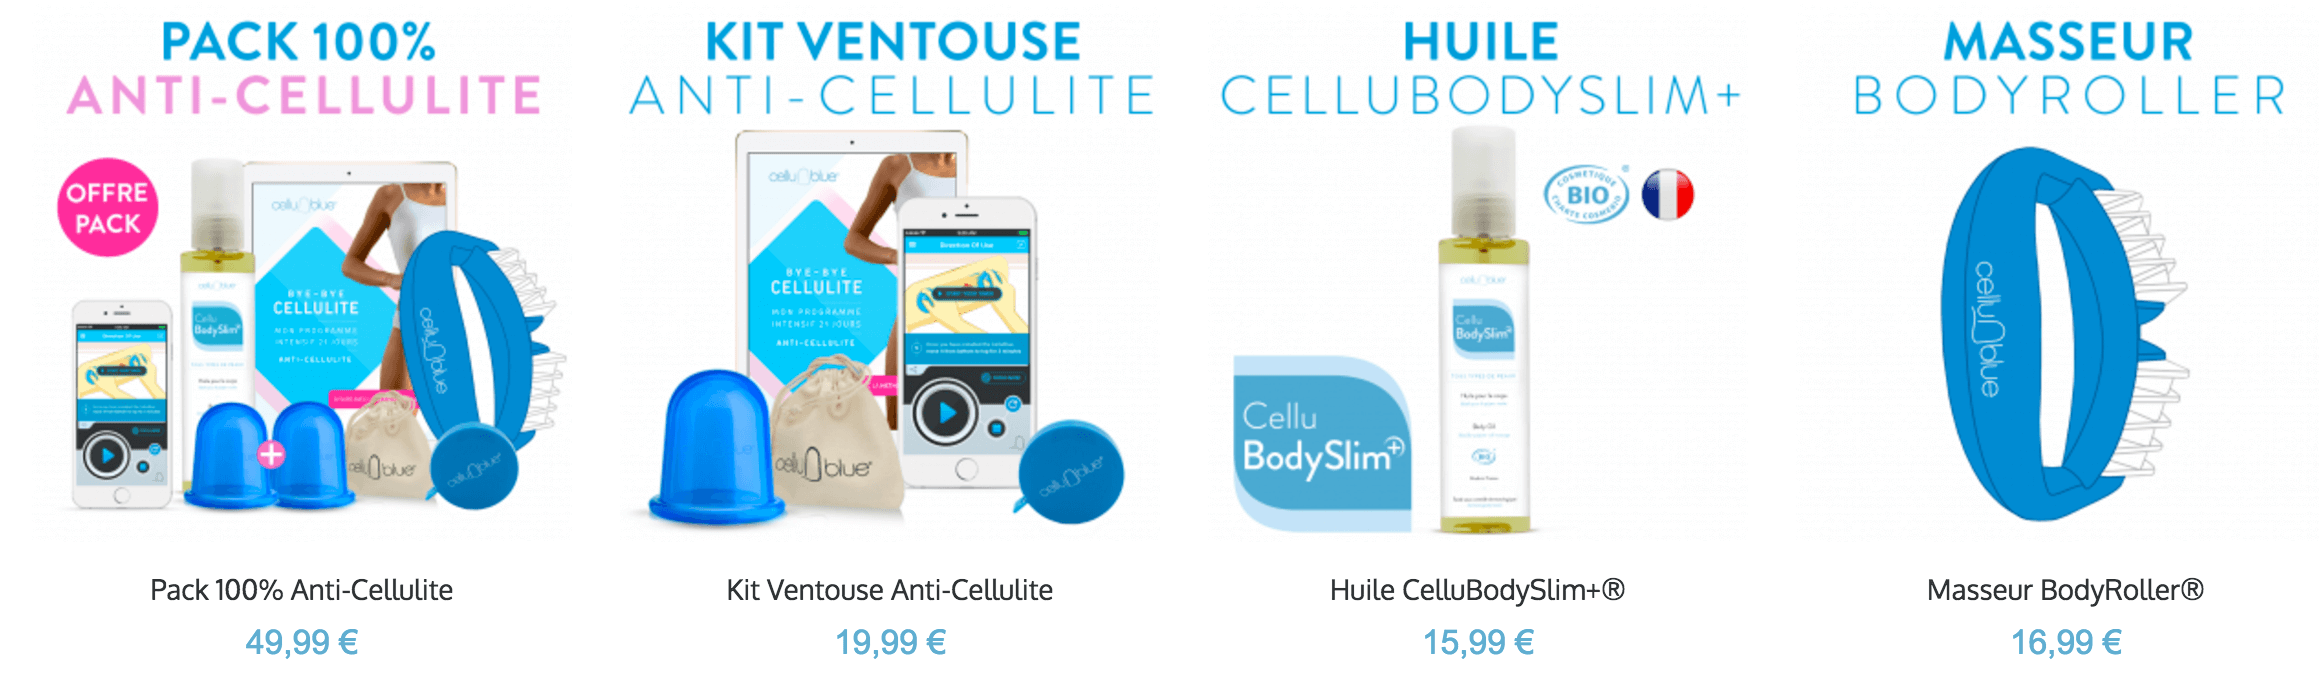 kit ventouse anti cellulite